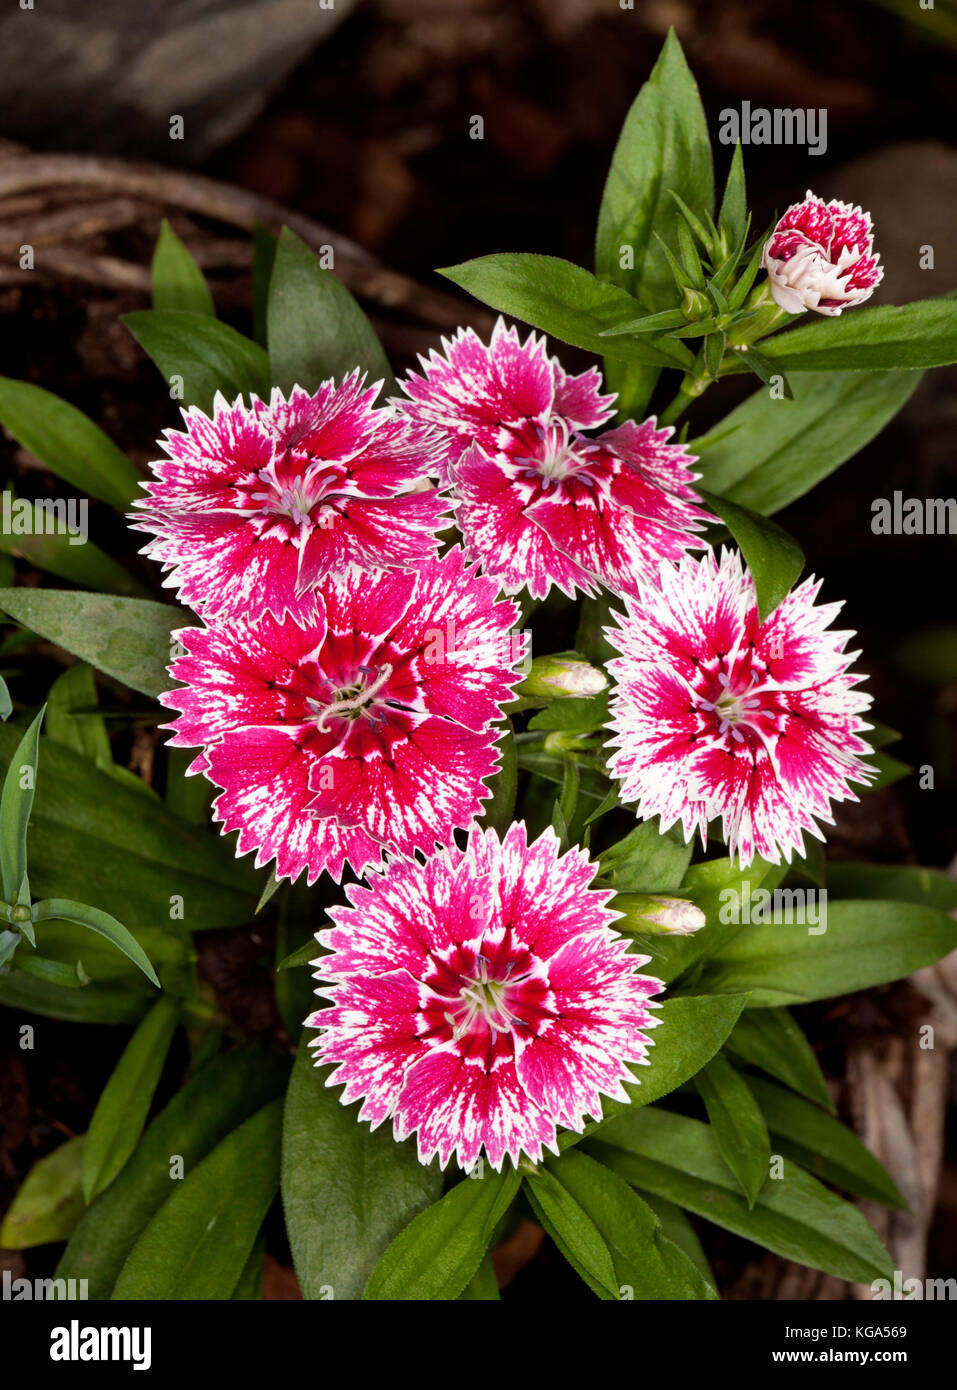 Cluster of vivid red and white flowers with frilly edged petals of Dianthus barbatus on background of green leaves - Stock Image